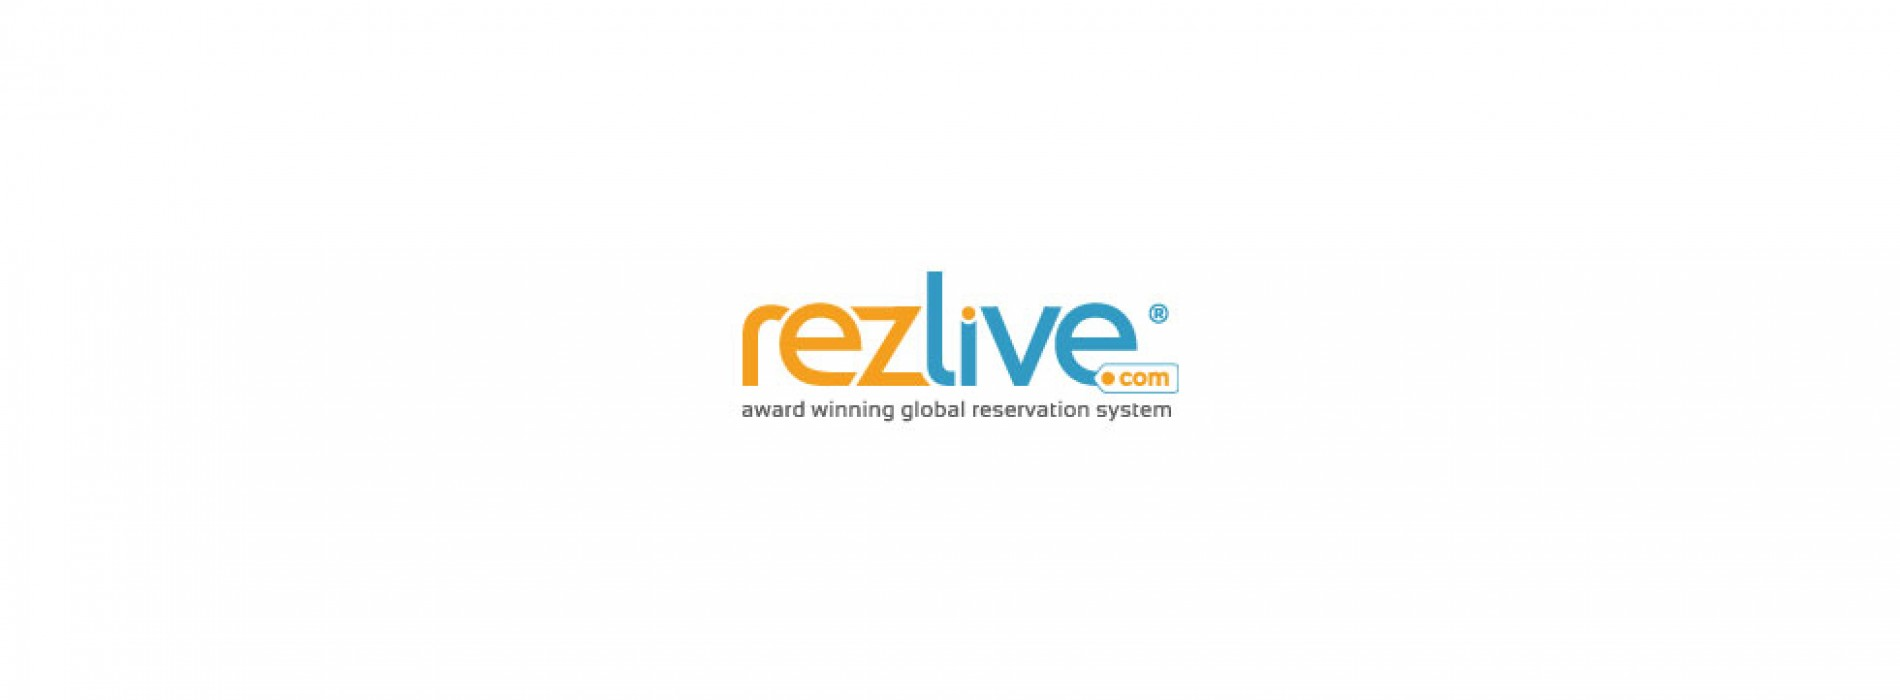 RezLive.com organized FAM Trip to Sri Lanka and Maldives